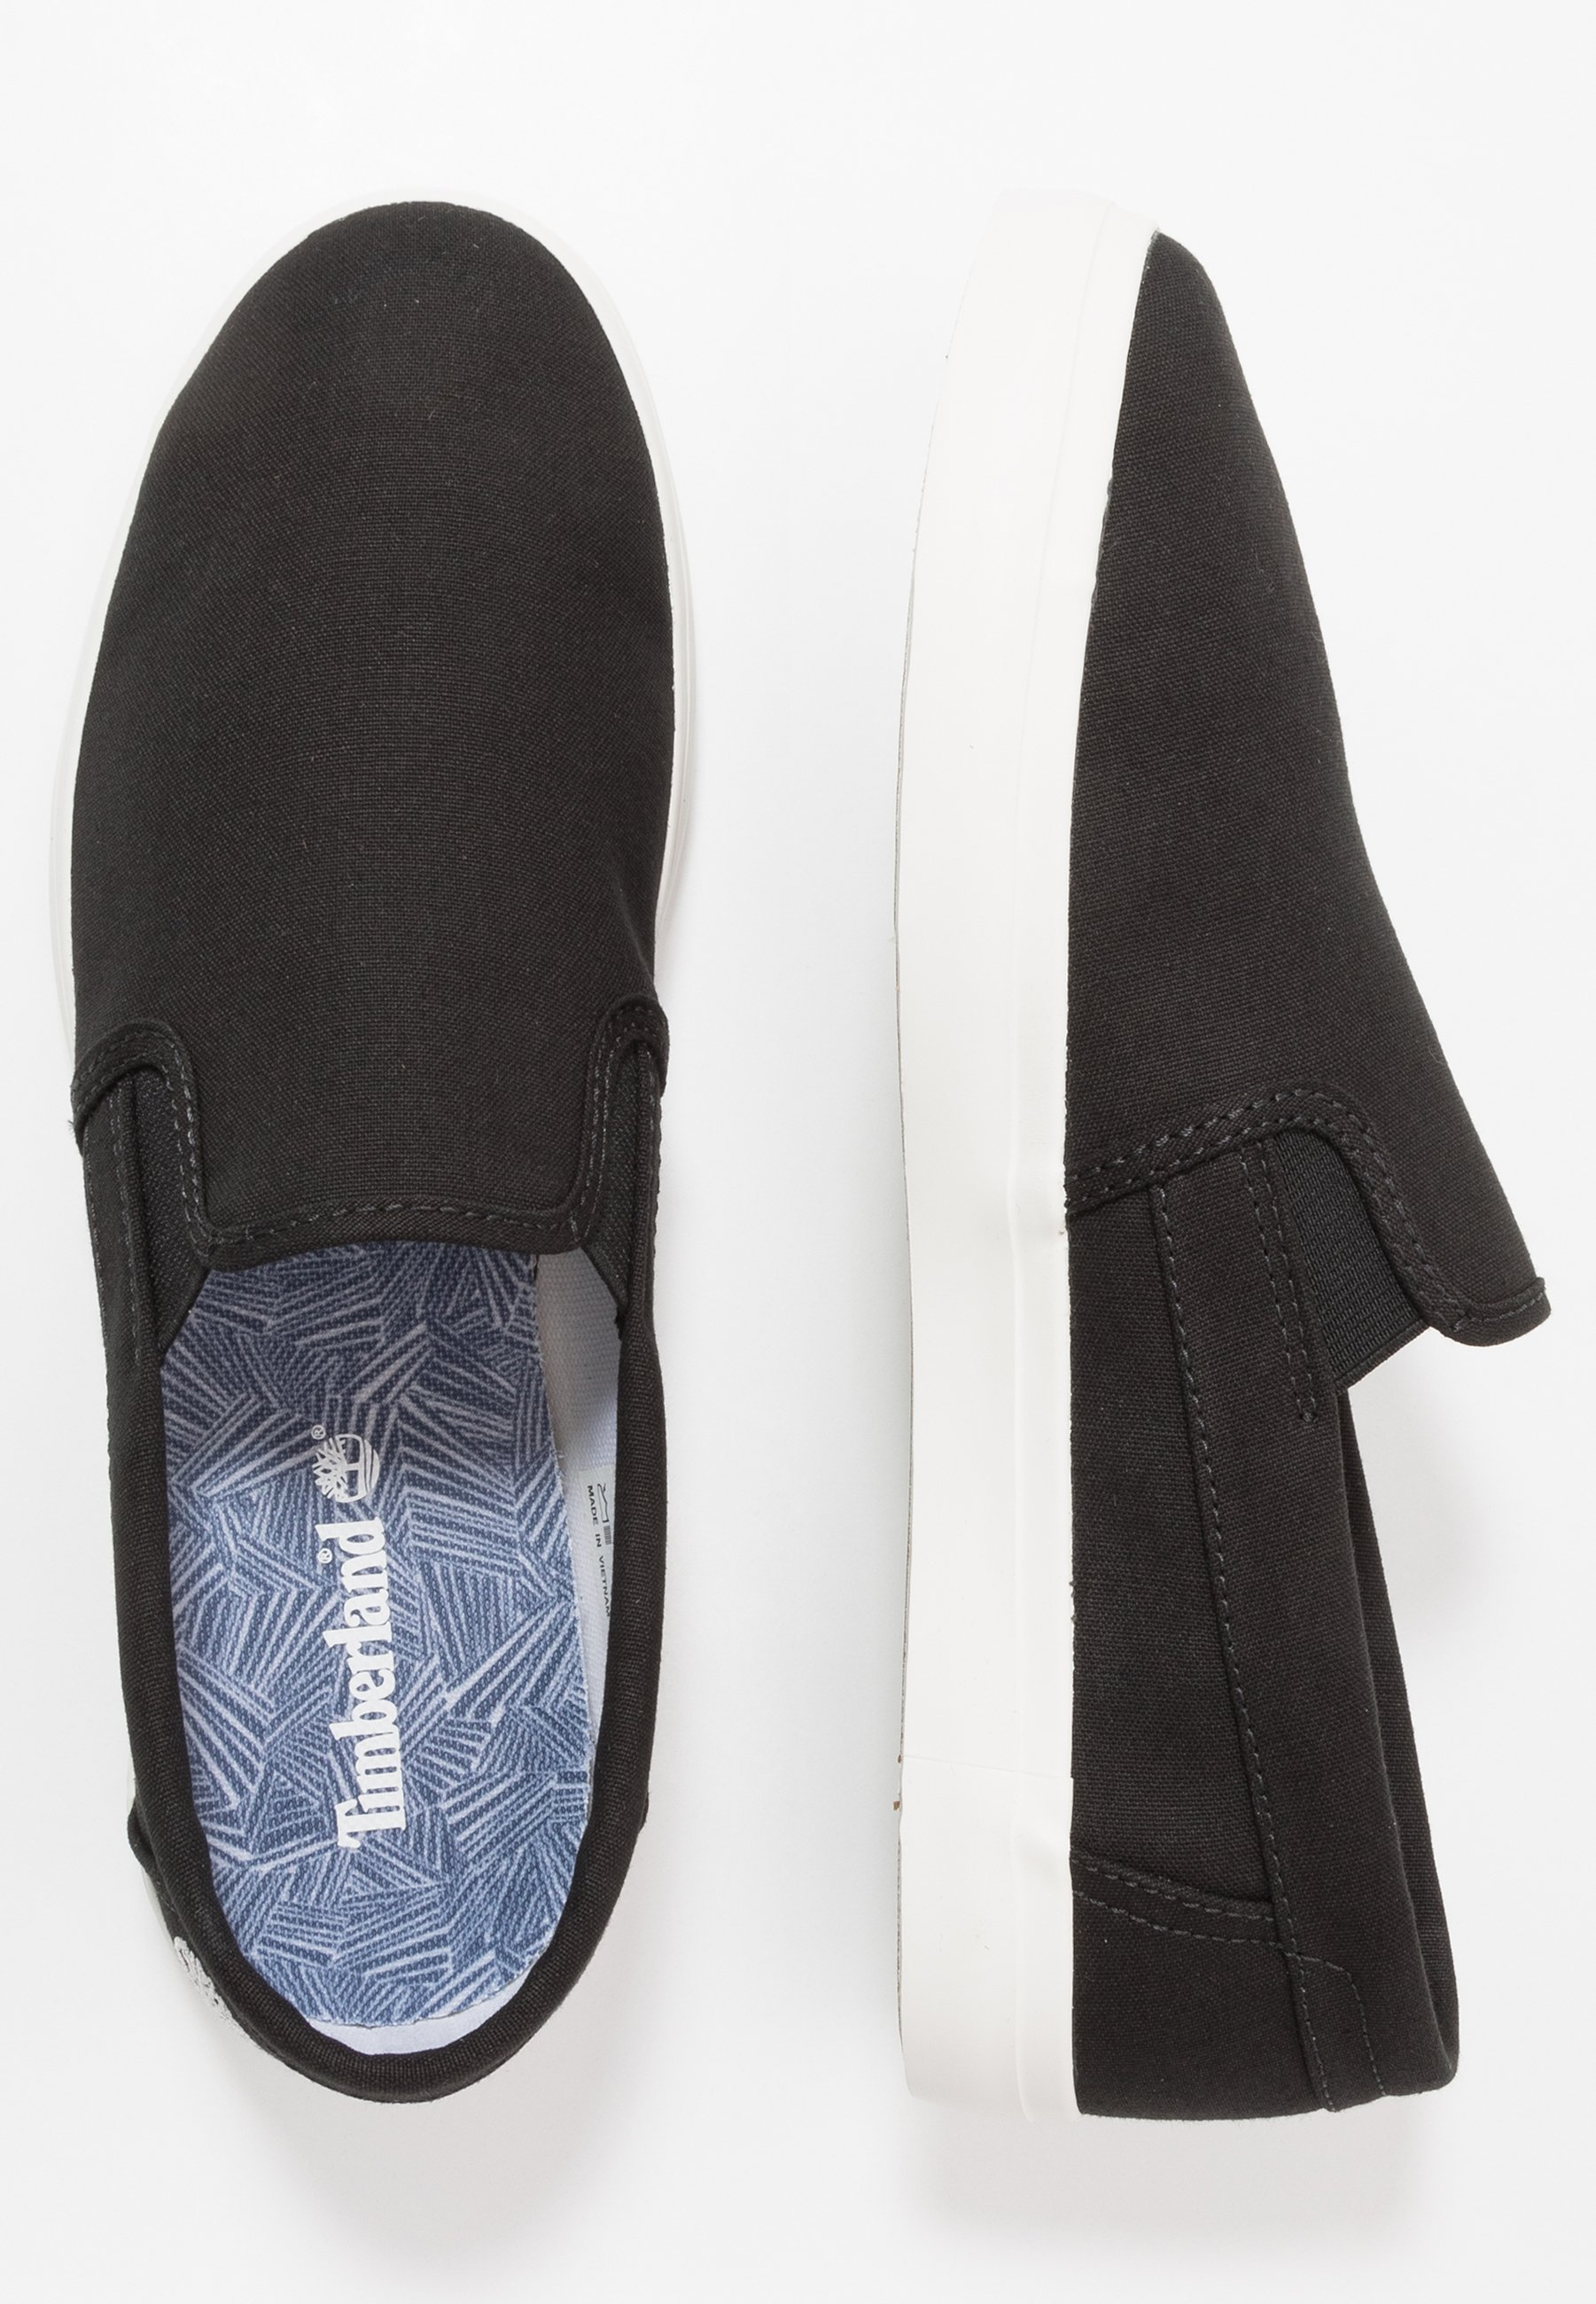 Timberland Union Wharf - Slippers Black Canvas